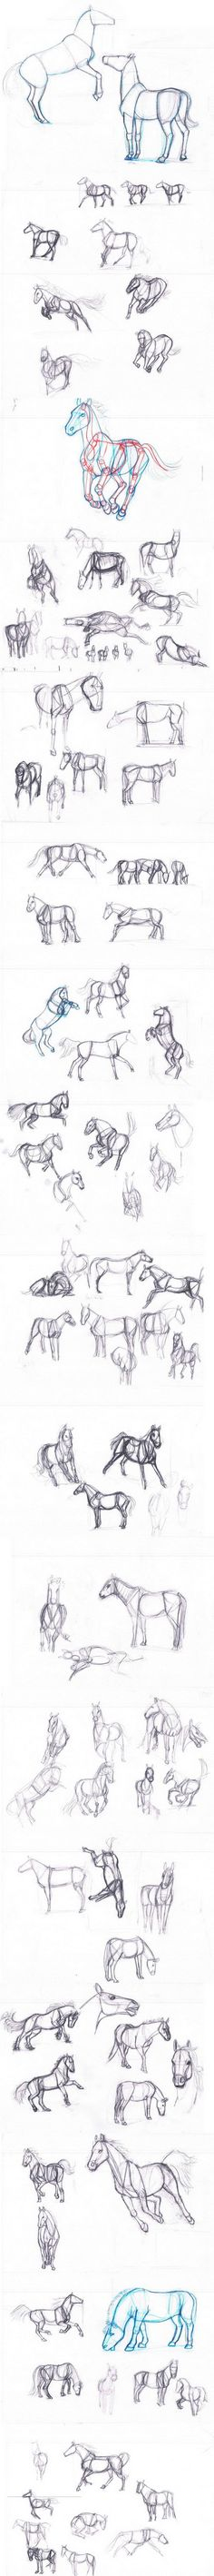 Horse studies with photoreference by sofmer.deviantart.com on @deviantART